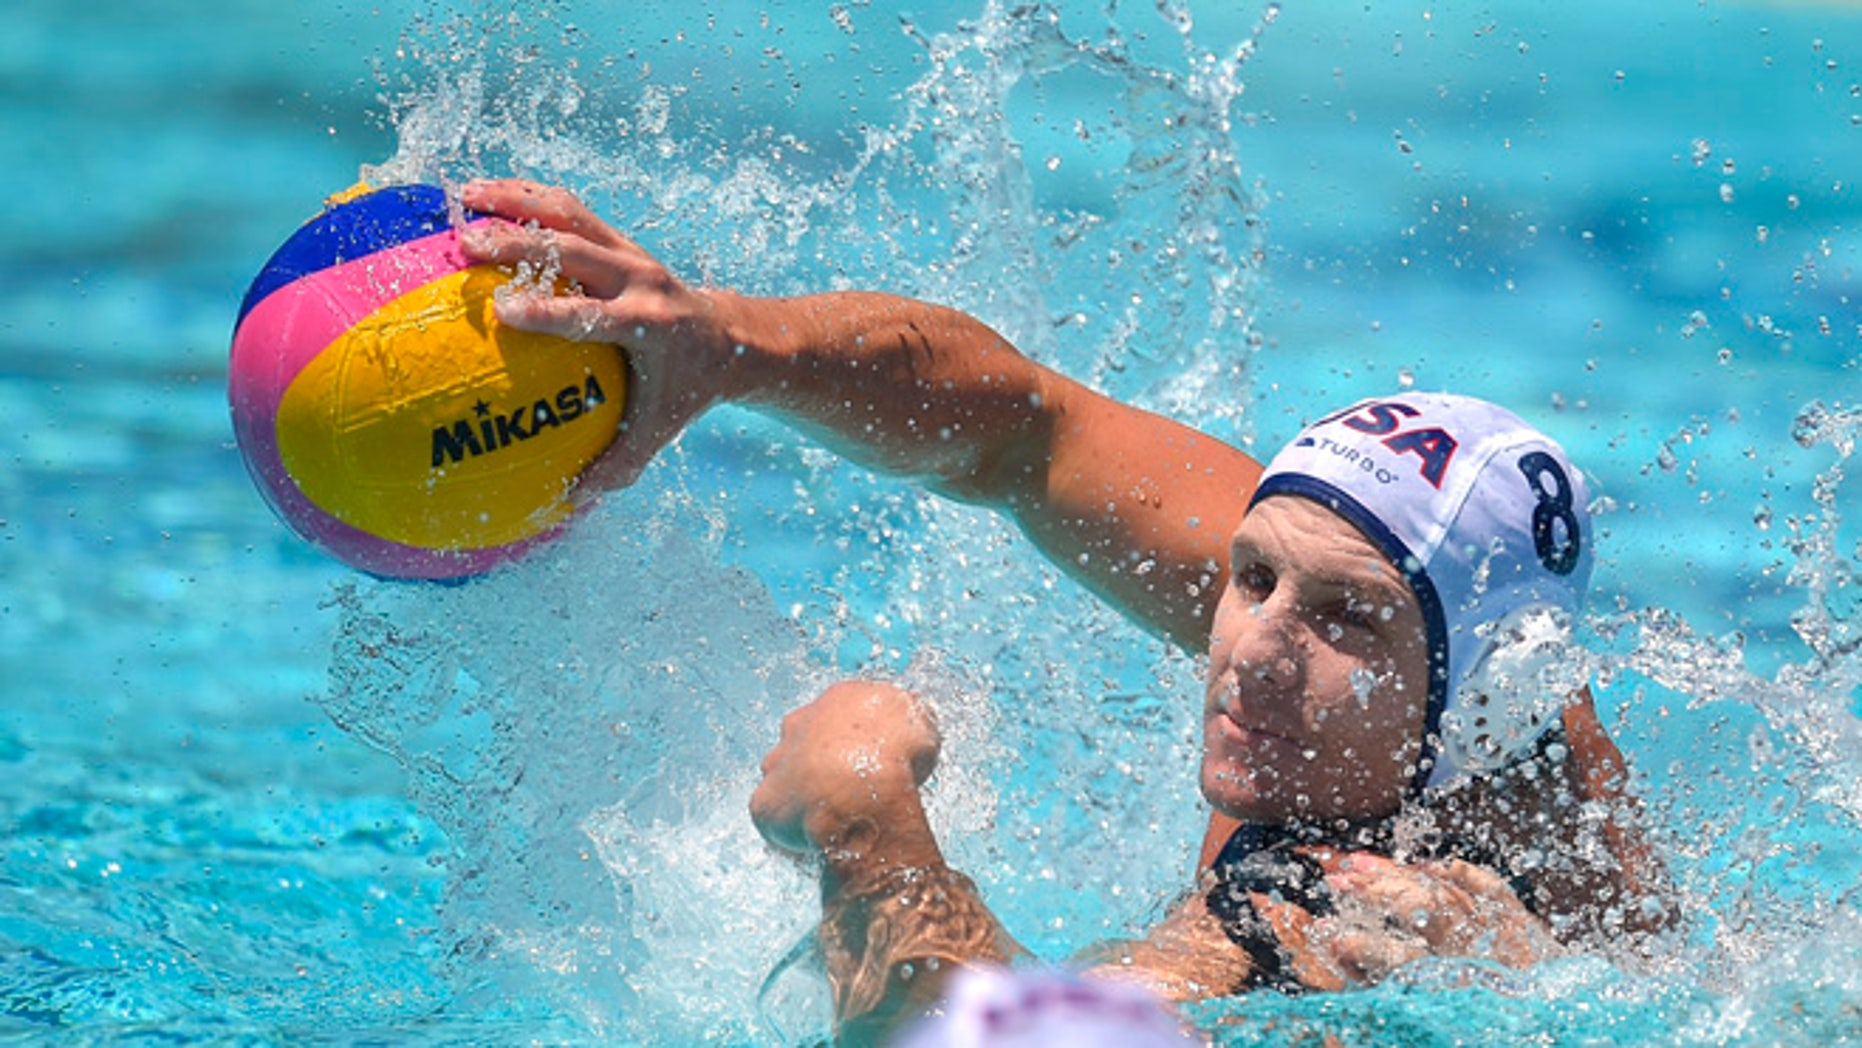 United States attacker Tony Azevedo passes the ball during a men's exhibition water polo match against Australia, Sunday, May 22, 2016, in Los Angeles. (AP Photo/Mark J. Terrill)